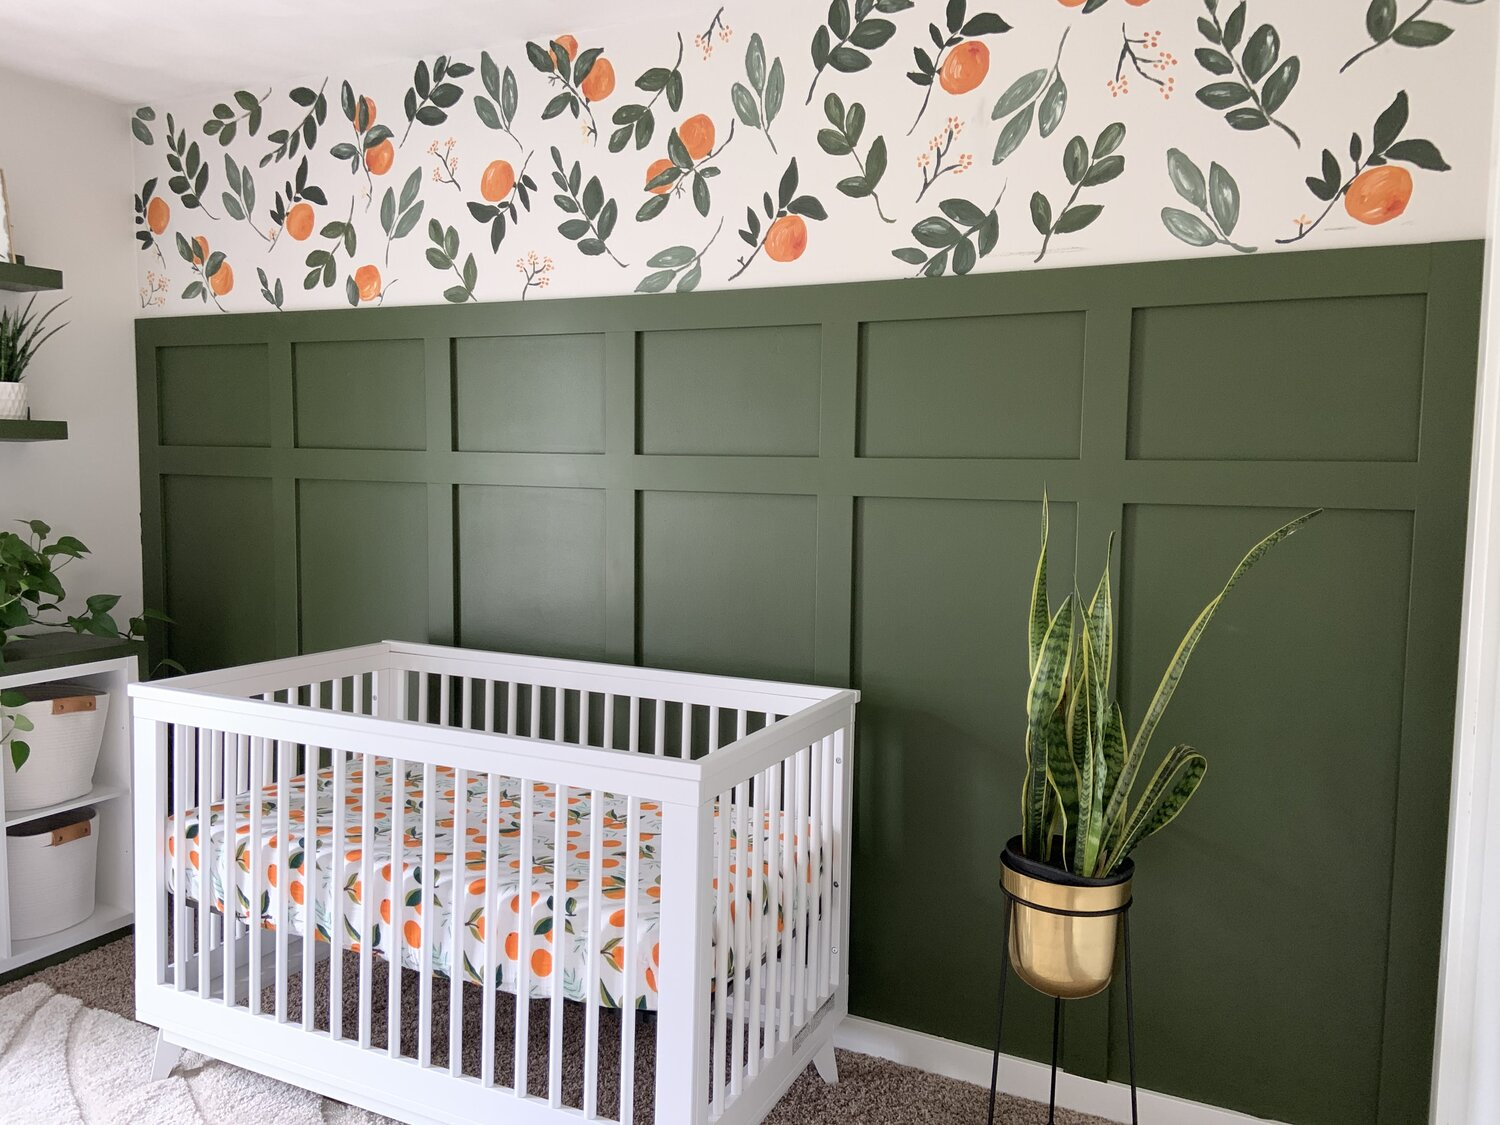 How to recreate a wallpaper accent wall using paint greywoodmama 1500x1125